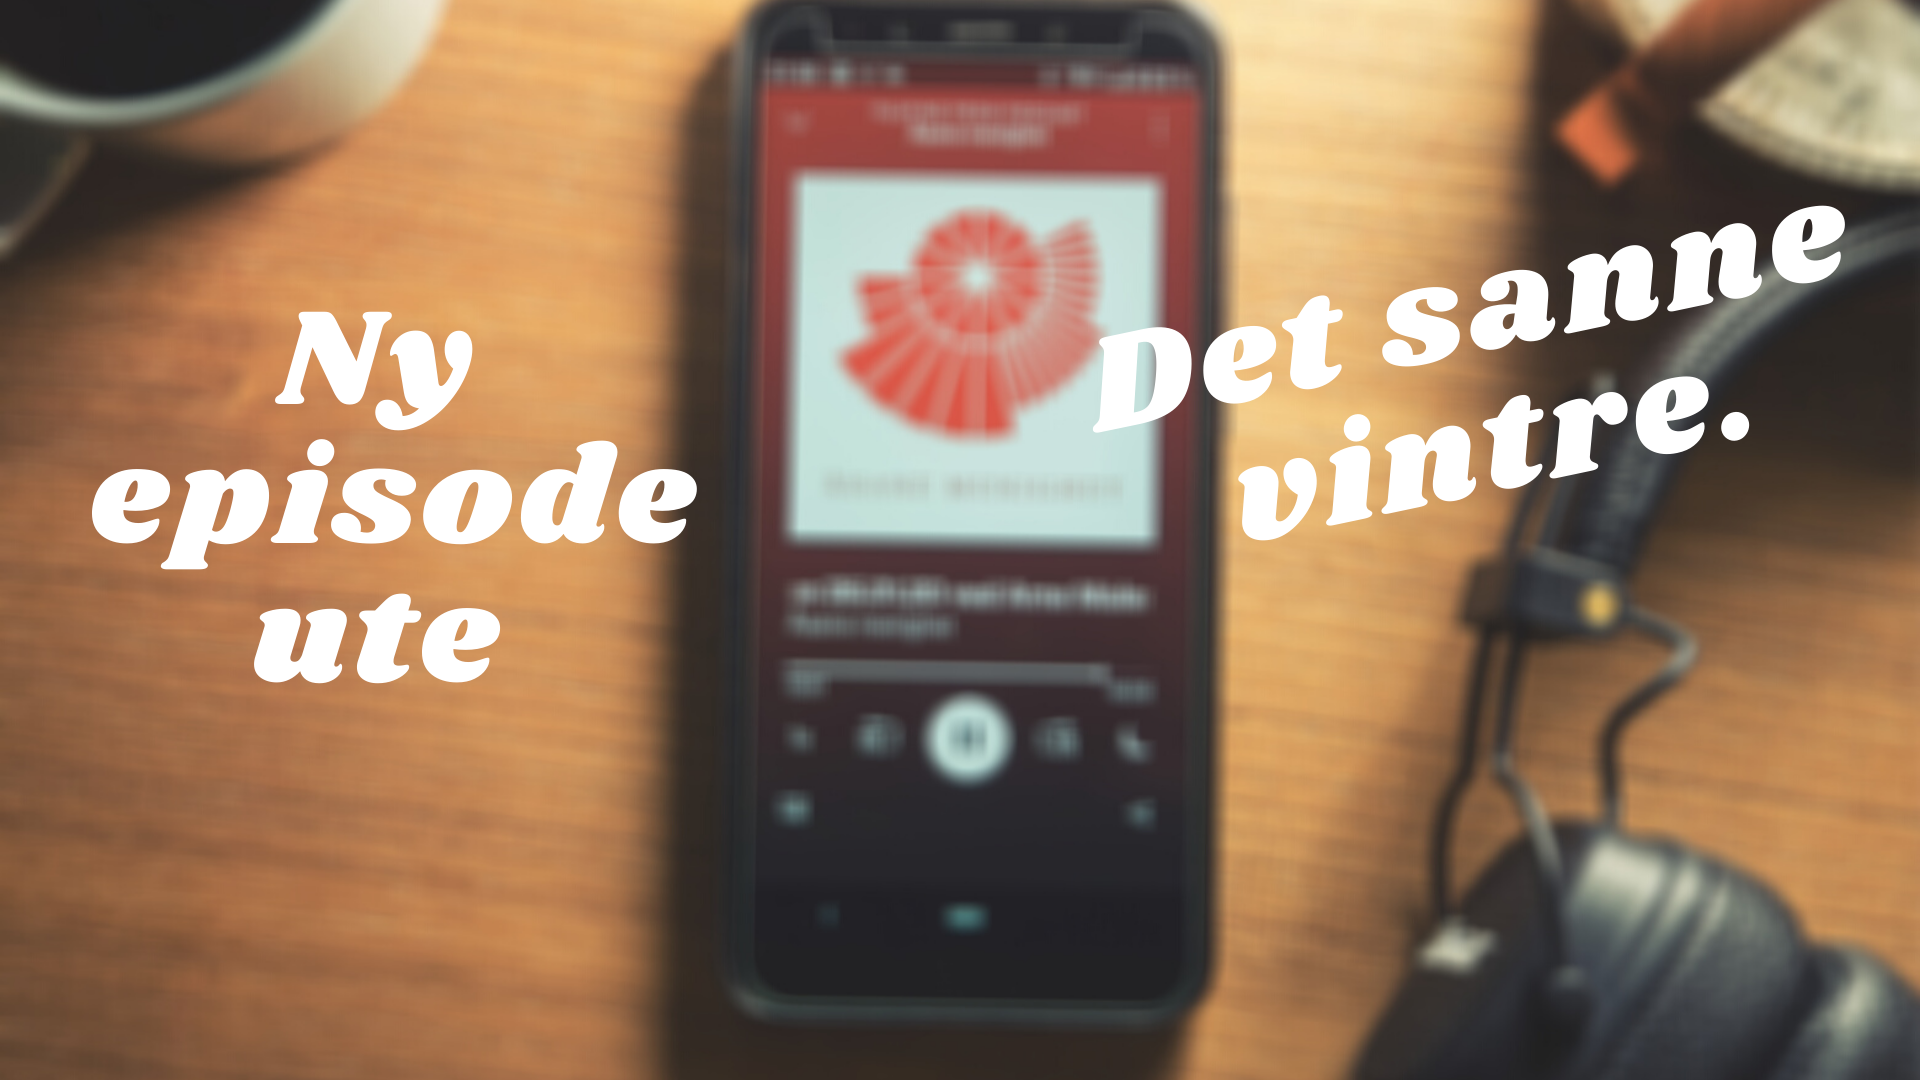 Ny episode av podcast ute - det sanne vintre